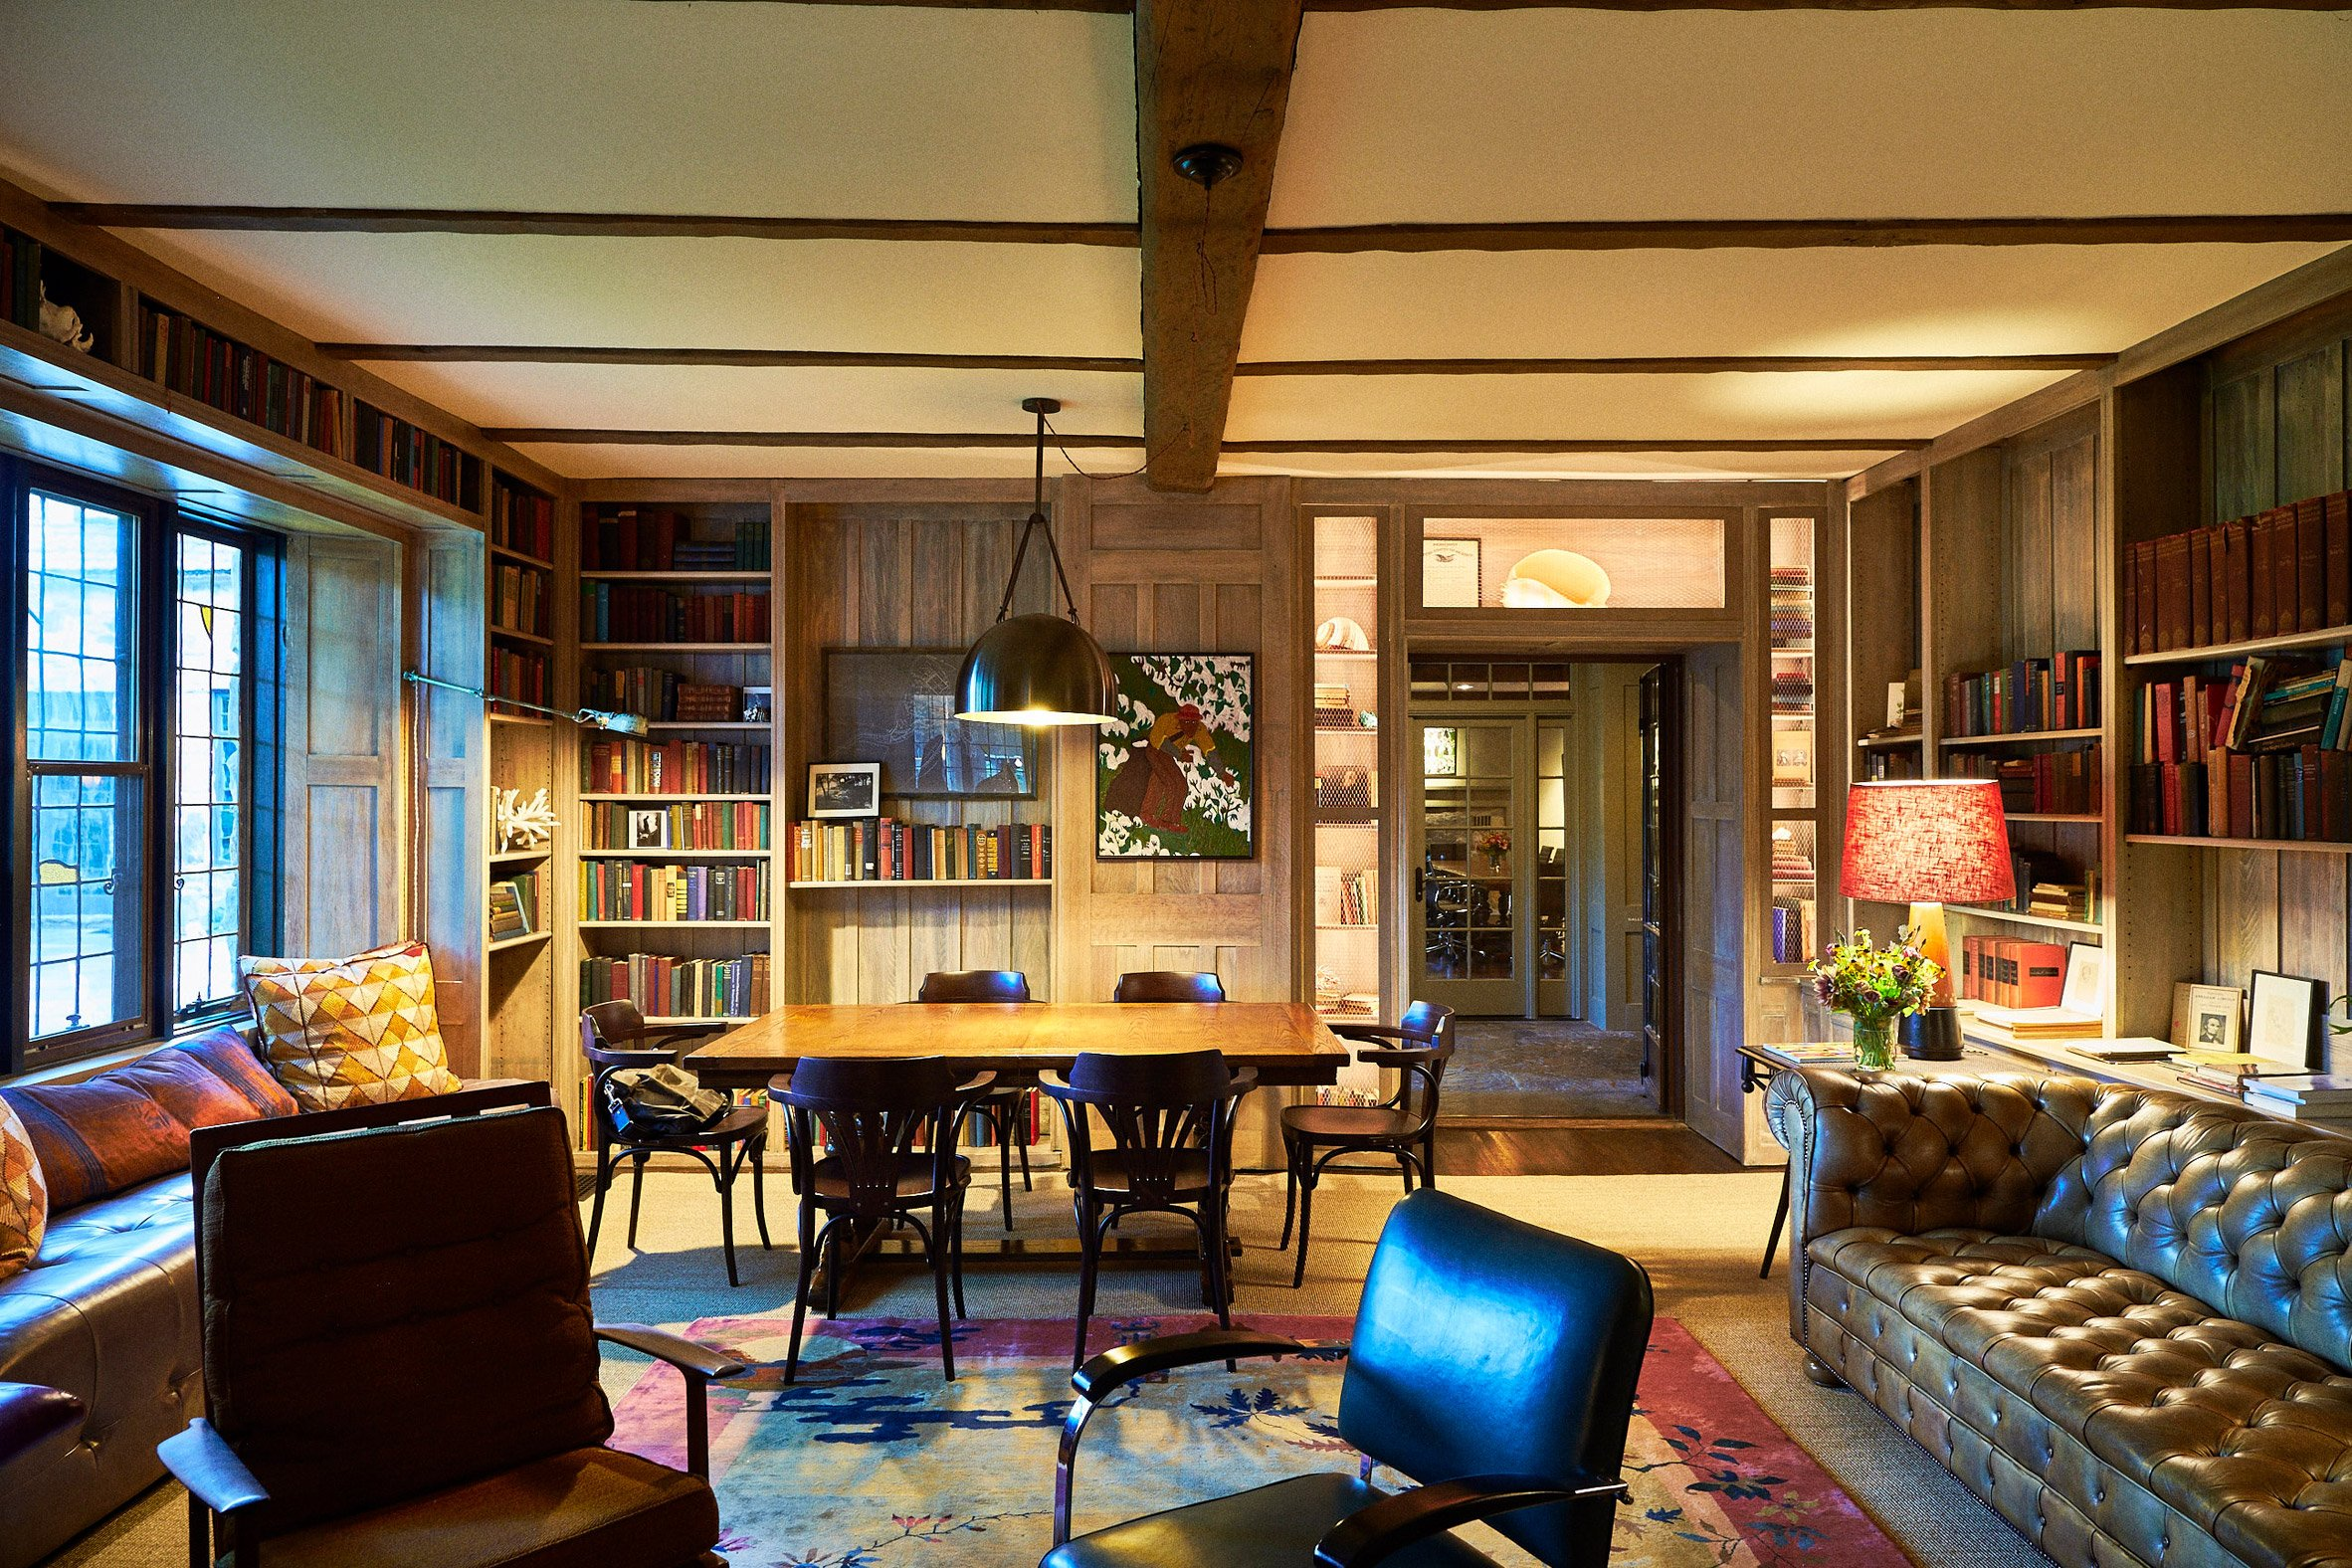 Troutbeck hotel in Upstate New York provides snug setting for rustic getaways